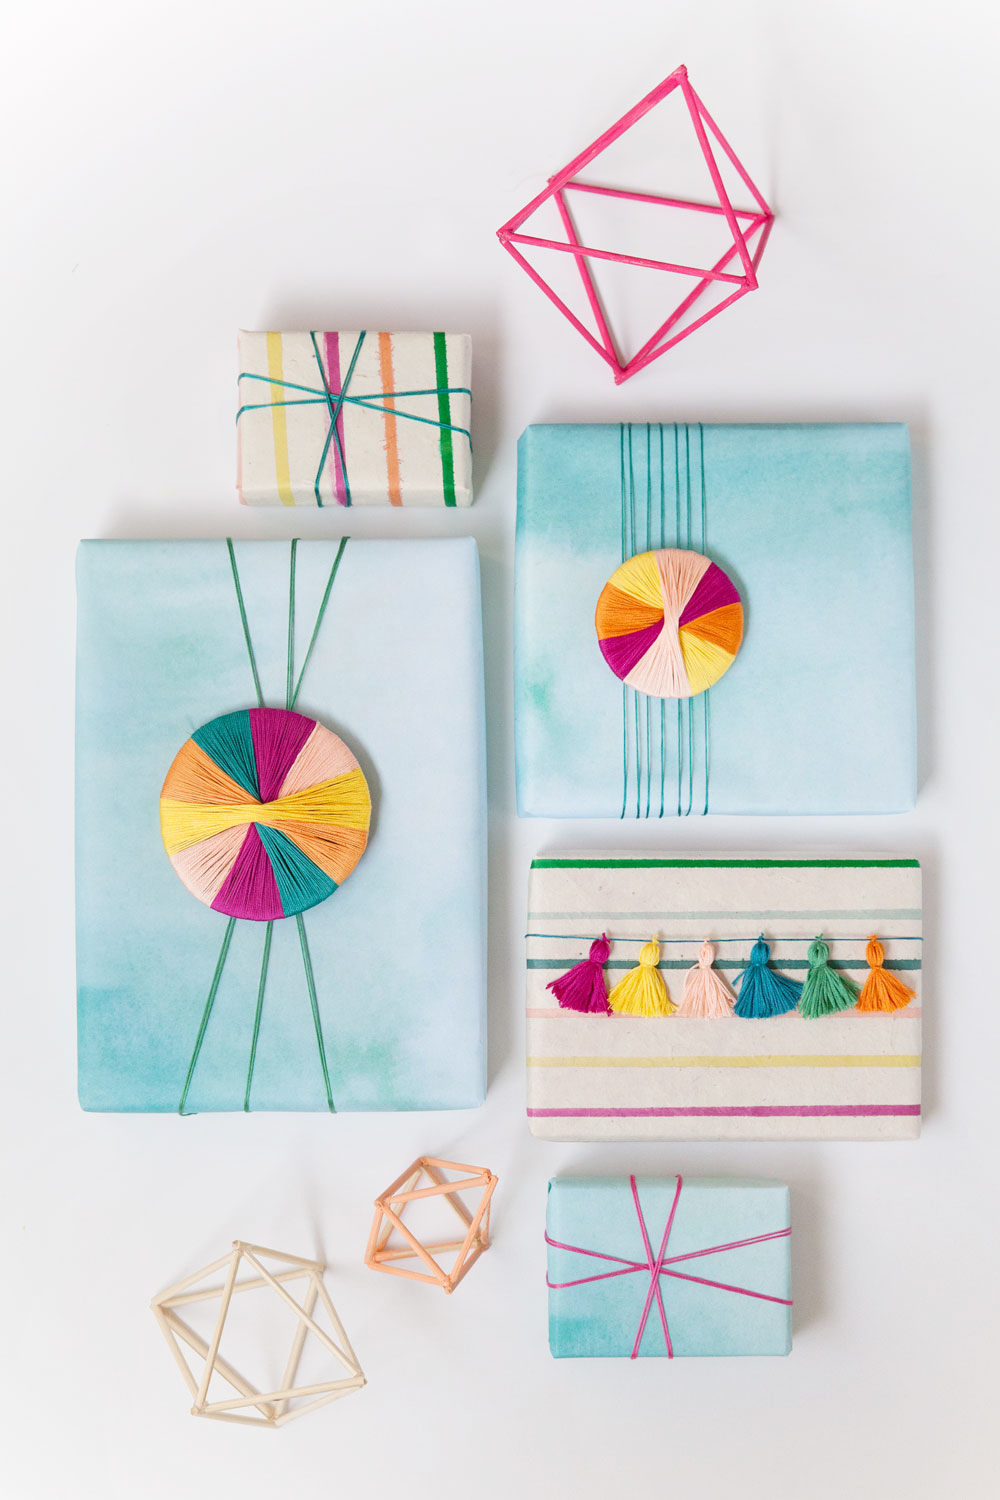 A-fun-and-unique-way-to-gift-wrap-using-embroidery-floss